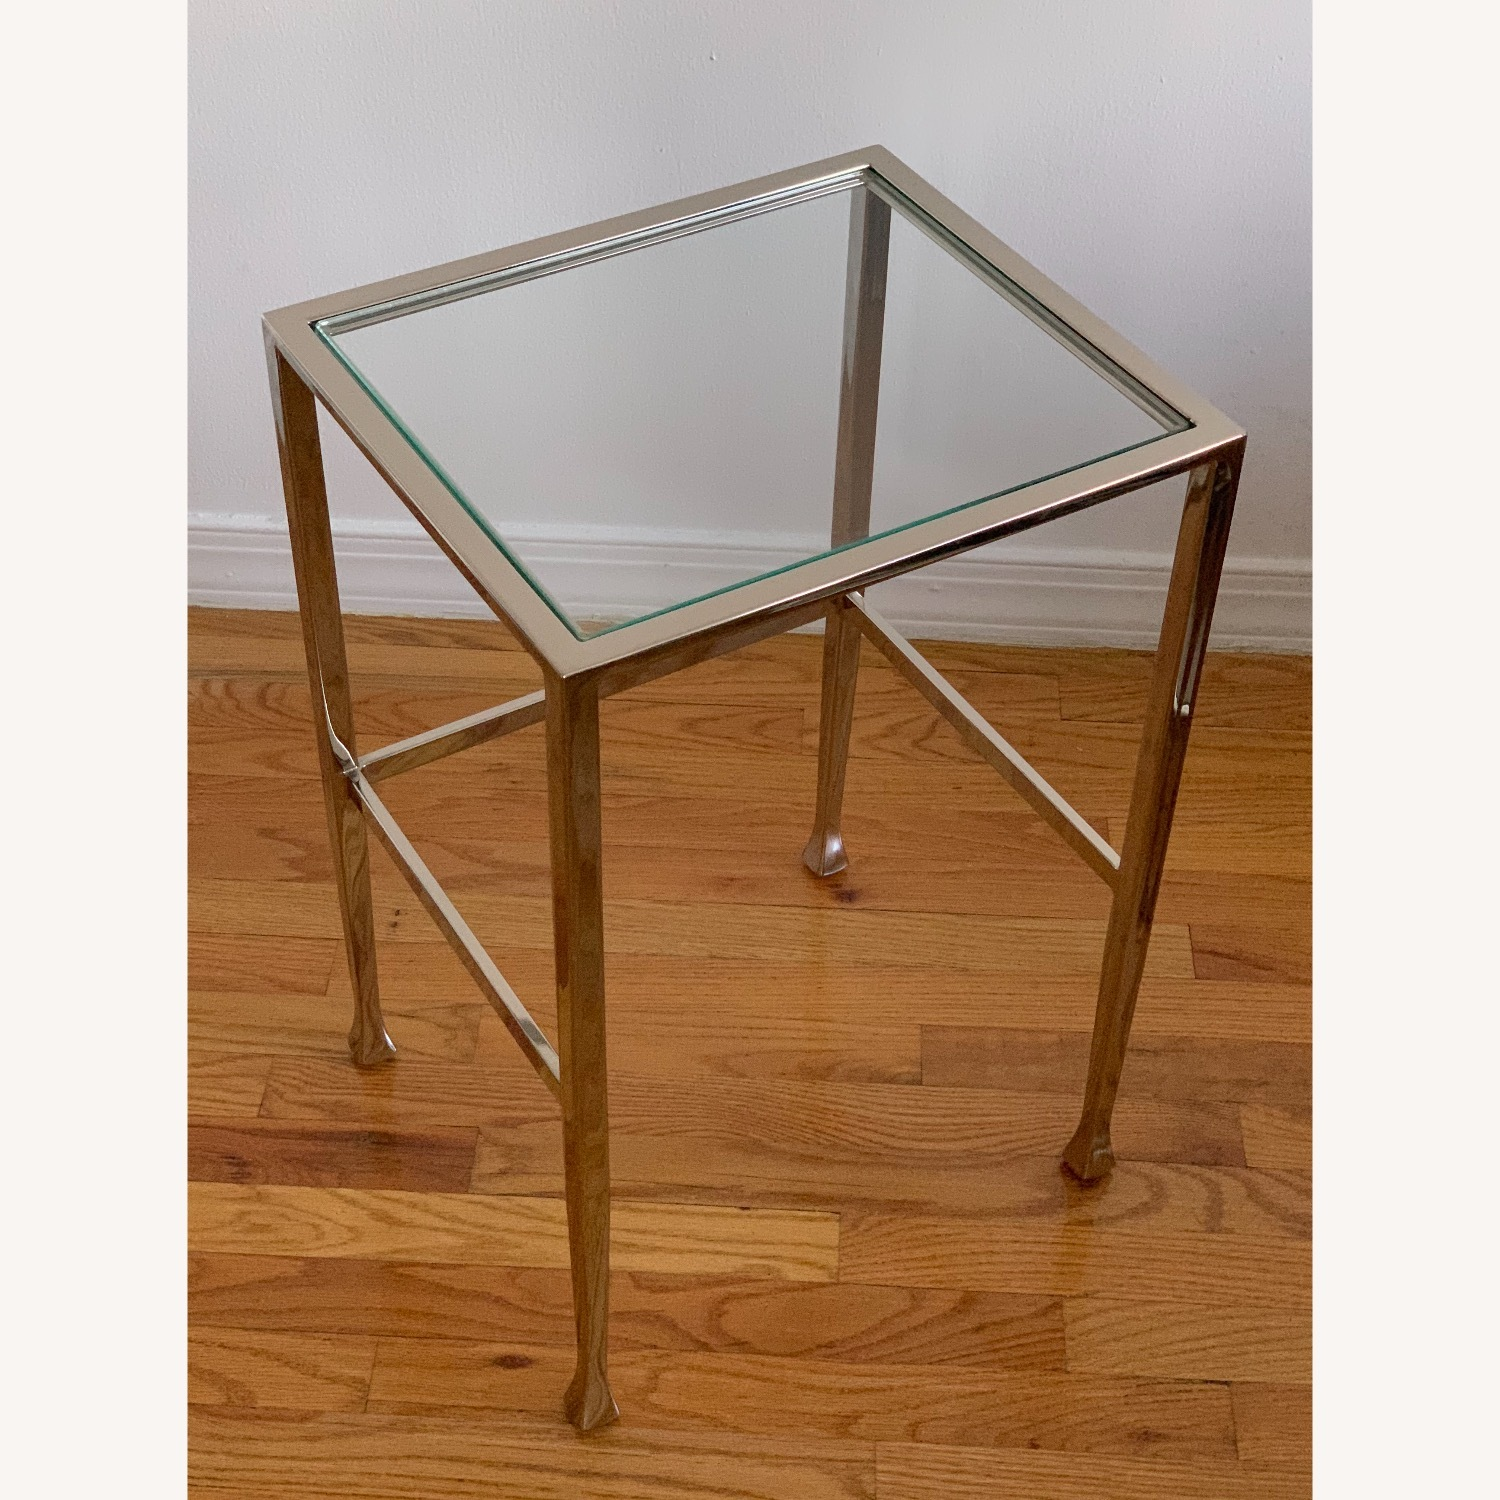 Pottery Barn Nickel End Tables - image-6